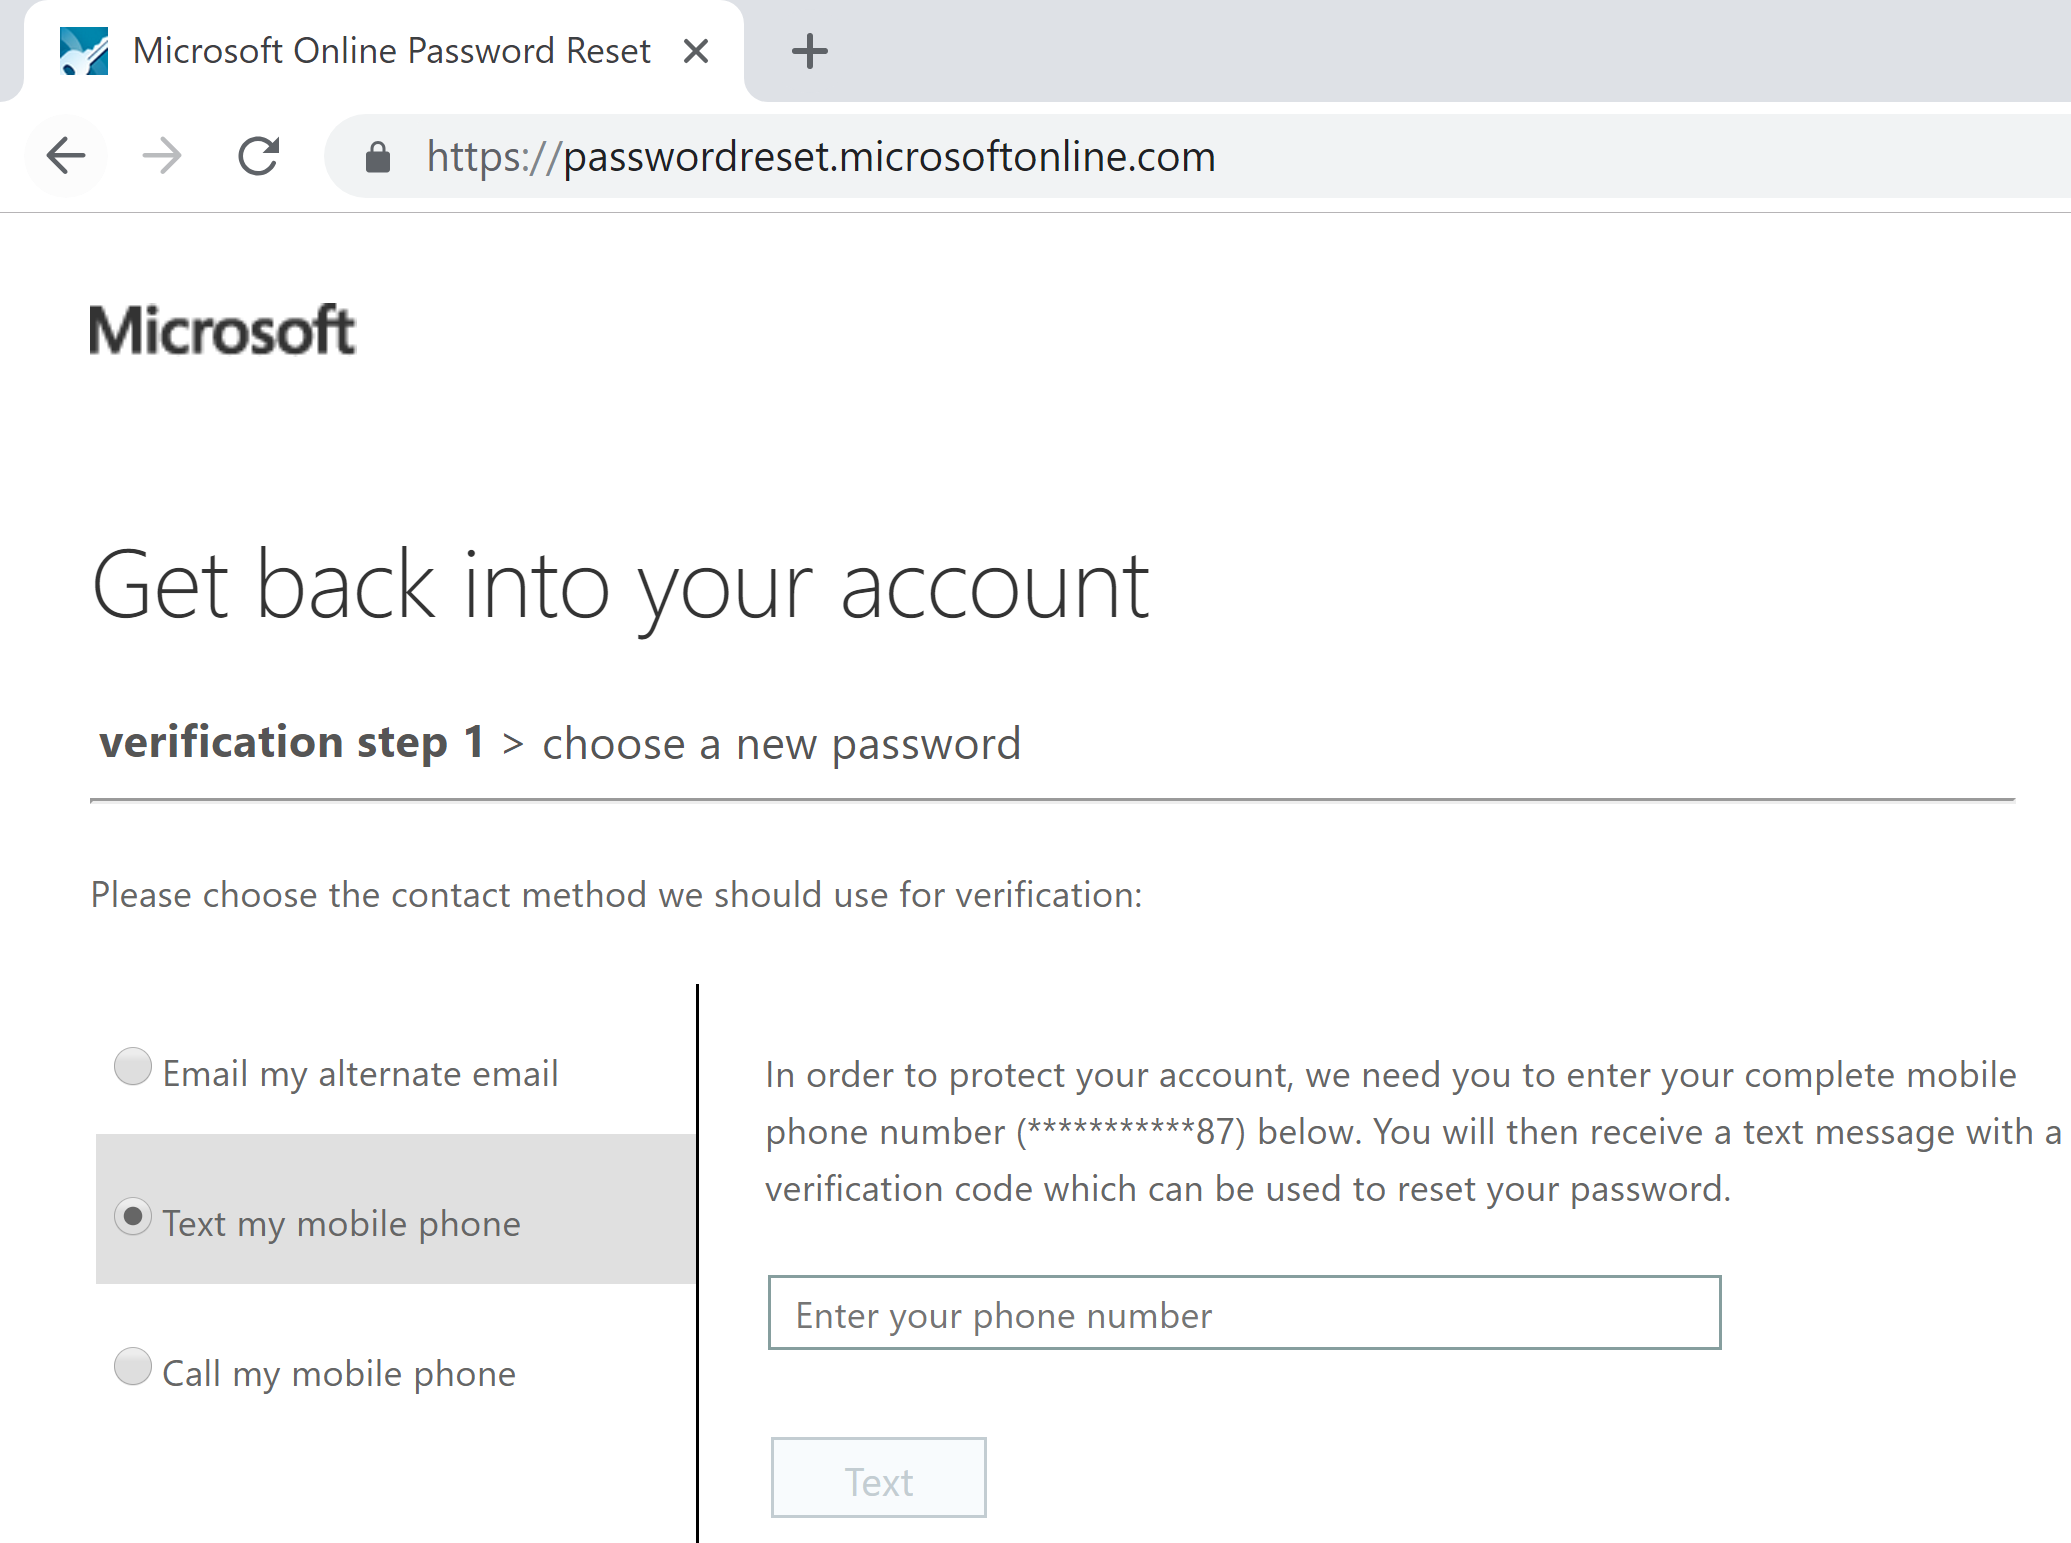 microsoft account password reset code text message